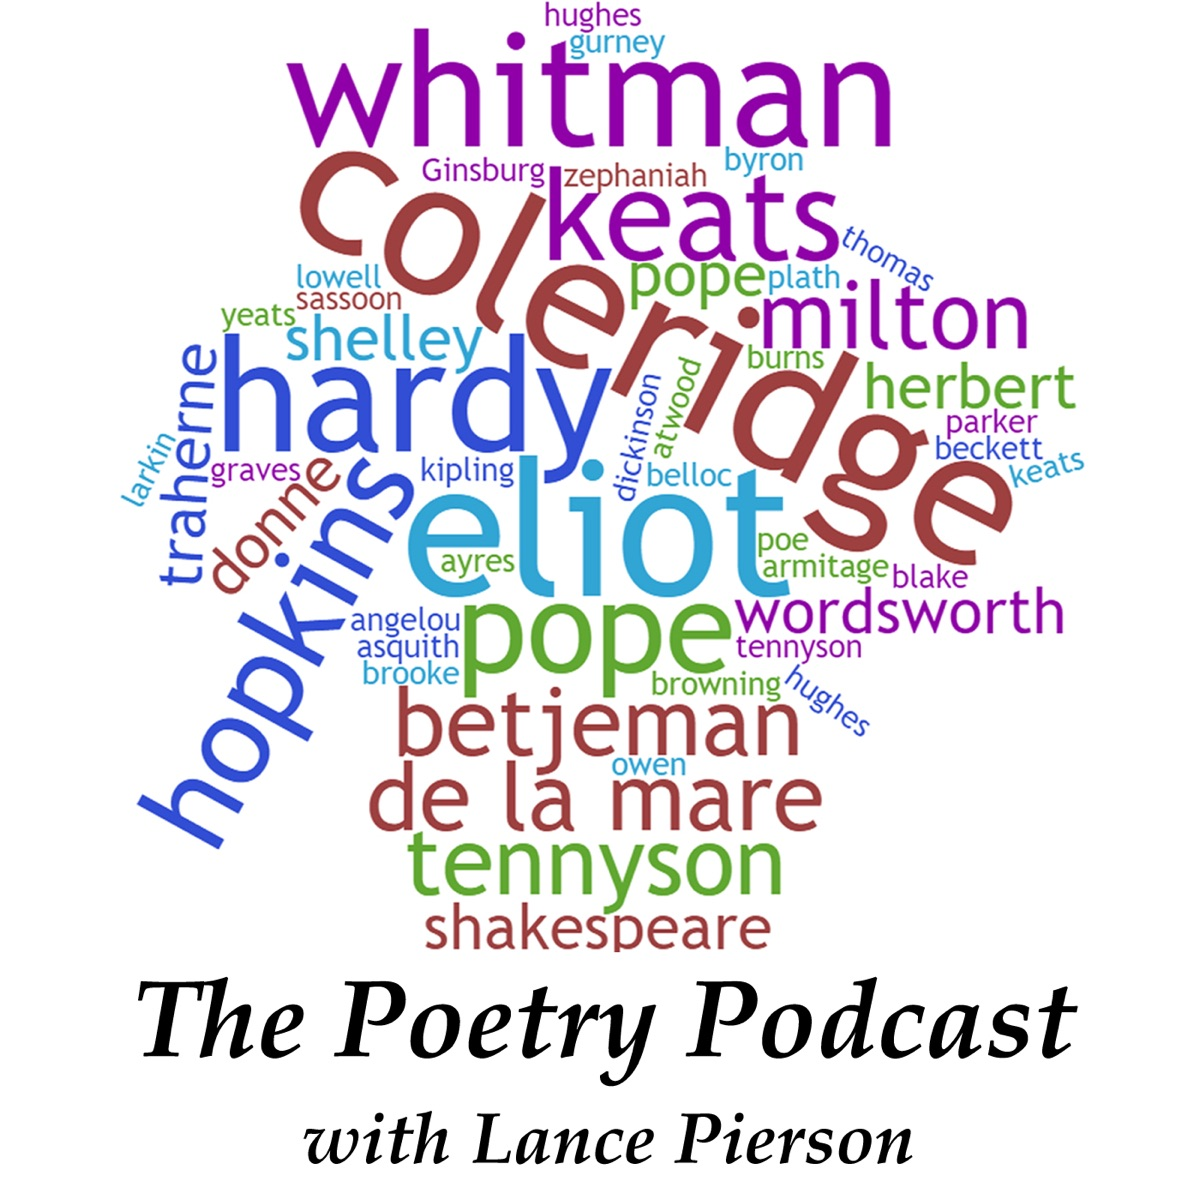 The Poetry Podcast with Lance Pierson